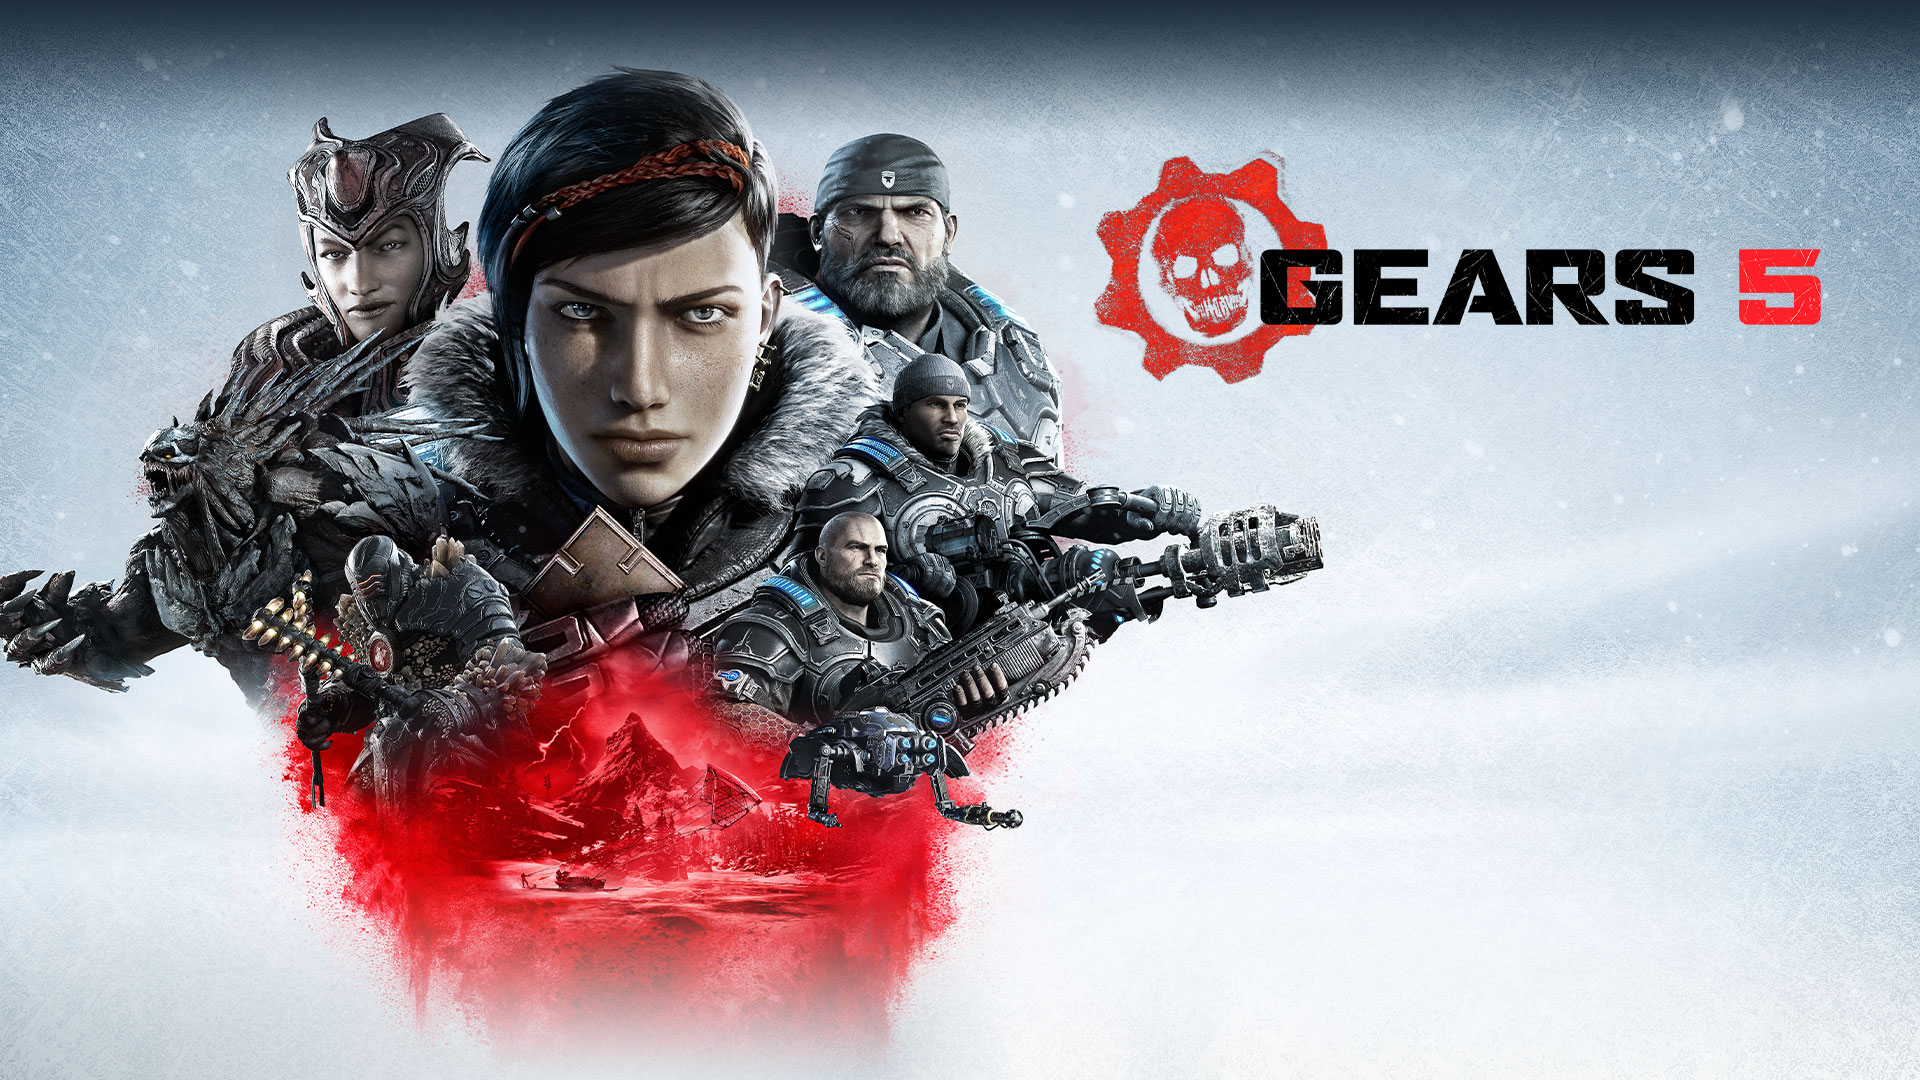 Gears 5, Collage of Gears main characters with enemies above an image of Kait riding a skiff